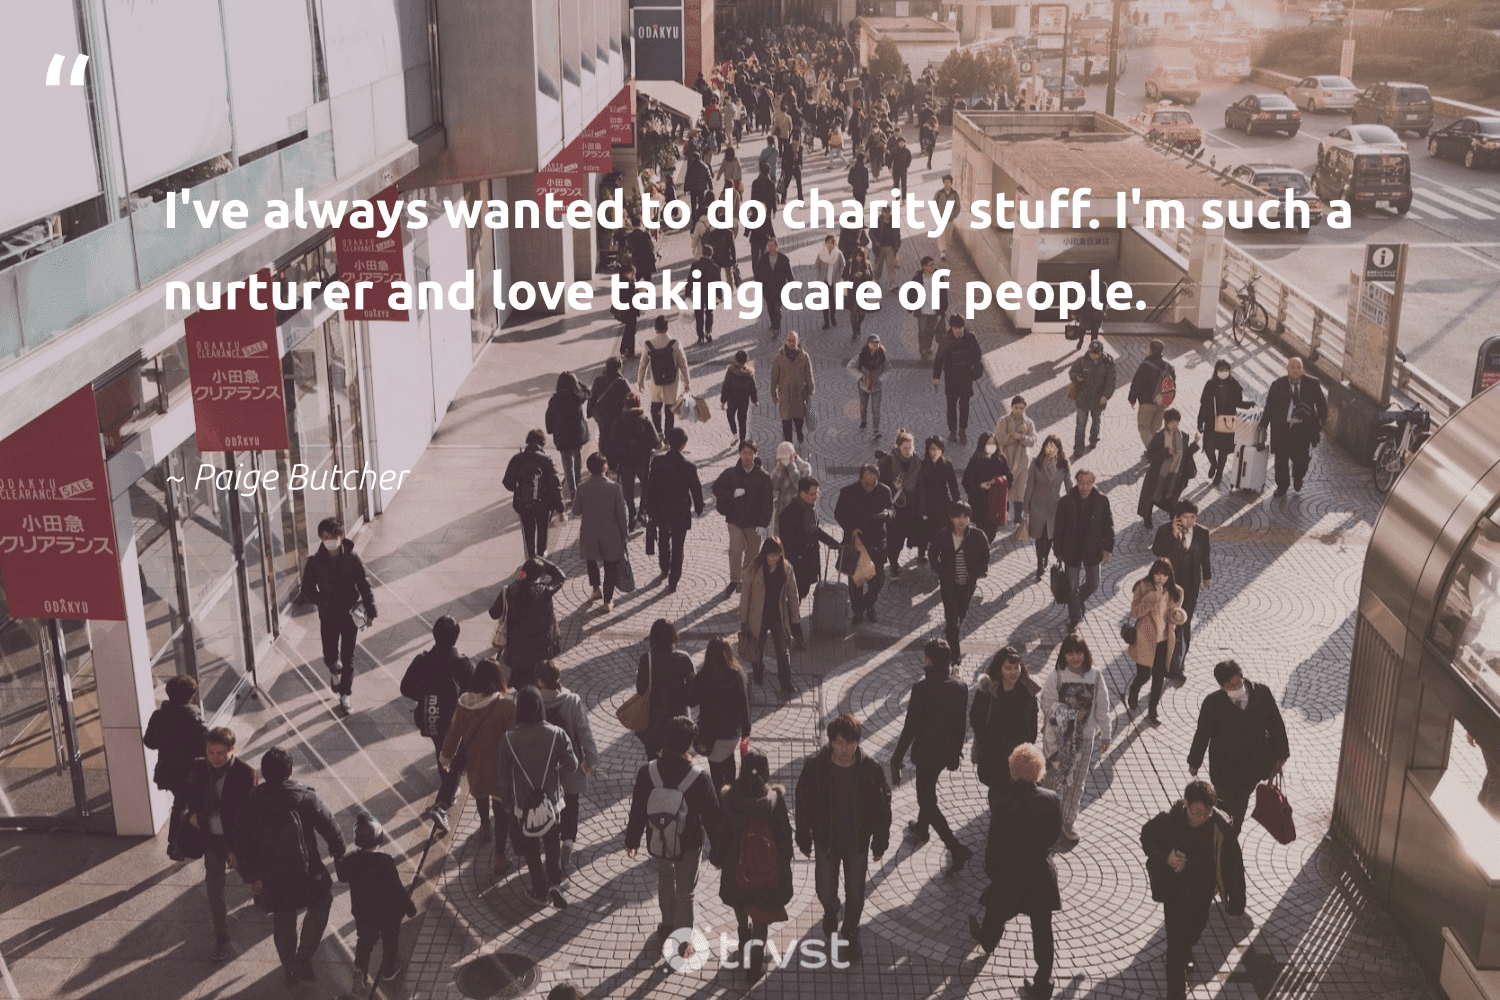 """""""I've always wanted to do charity stuff. I'm such a nurturer and love taking care of people.""""  - Paige Butcher #trvst #quotes #love #bethechange #socialimpact #makeadifference #dogood #weareallone #dotherightthing #equalopportunity #thinkgreen #communities"""